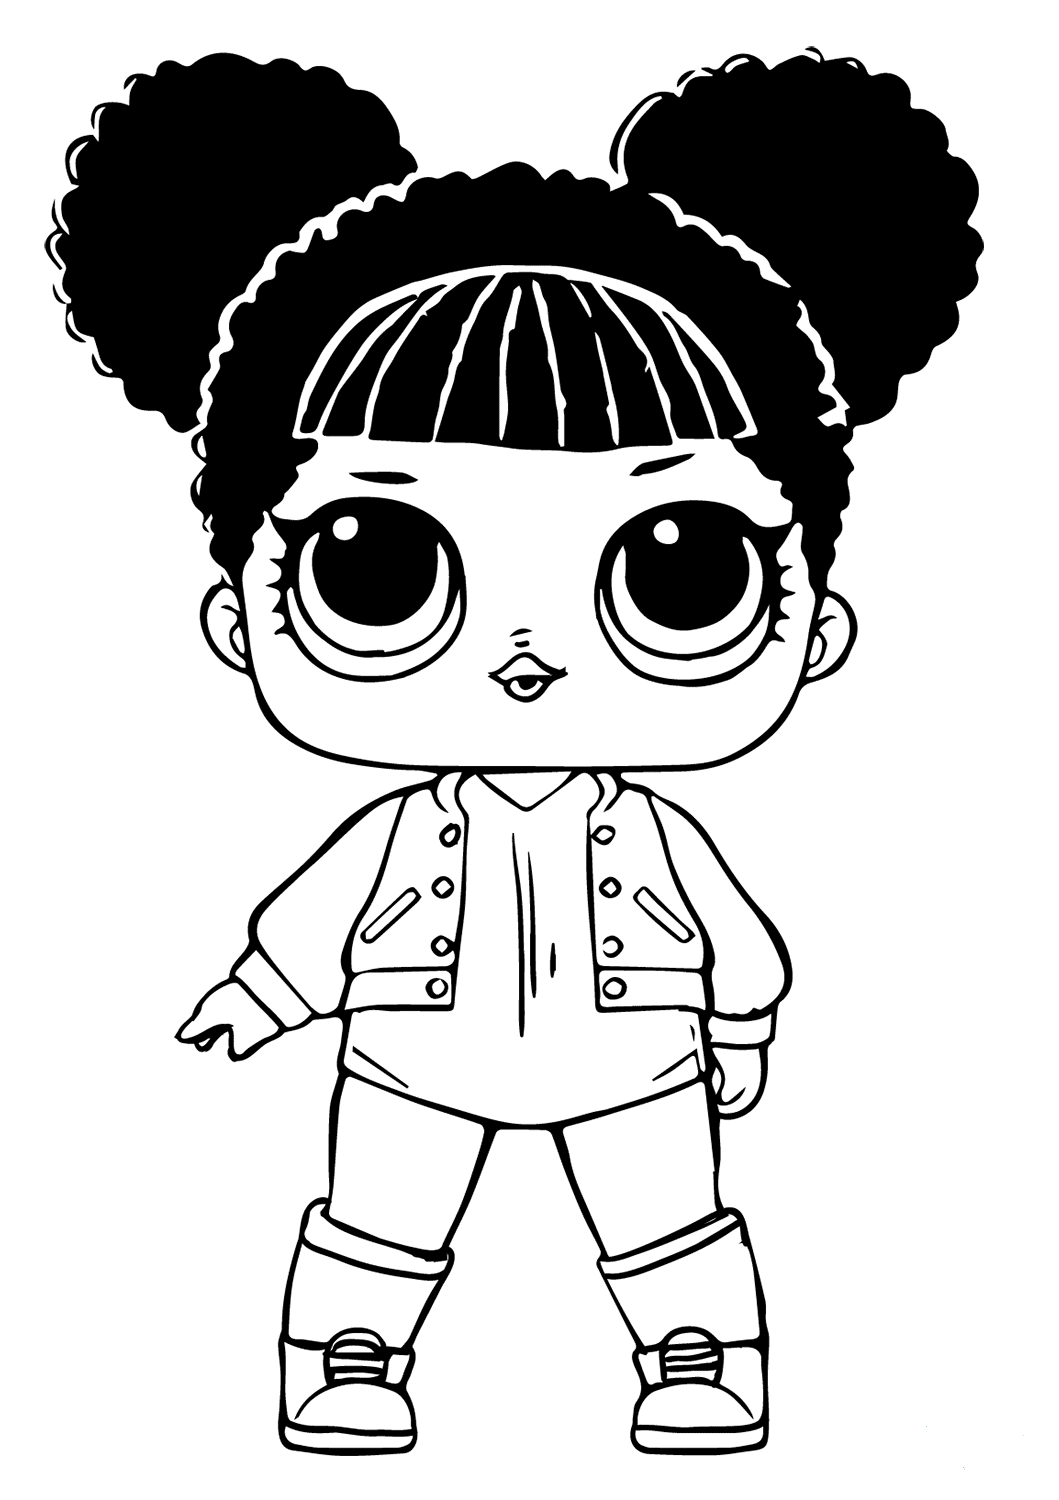 dolls colouring pages lol surprise doll coloring pages getcoloringpagescom colouring pages dolls